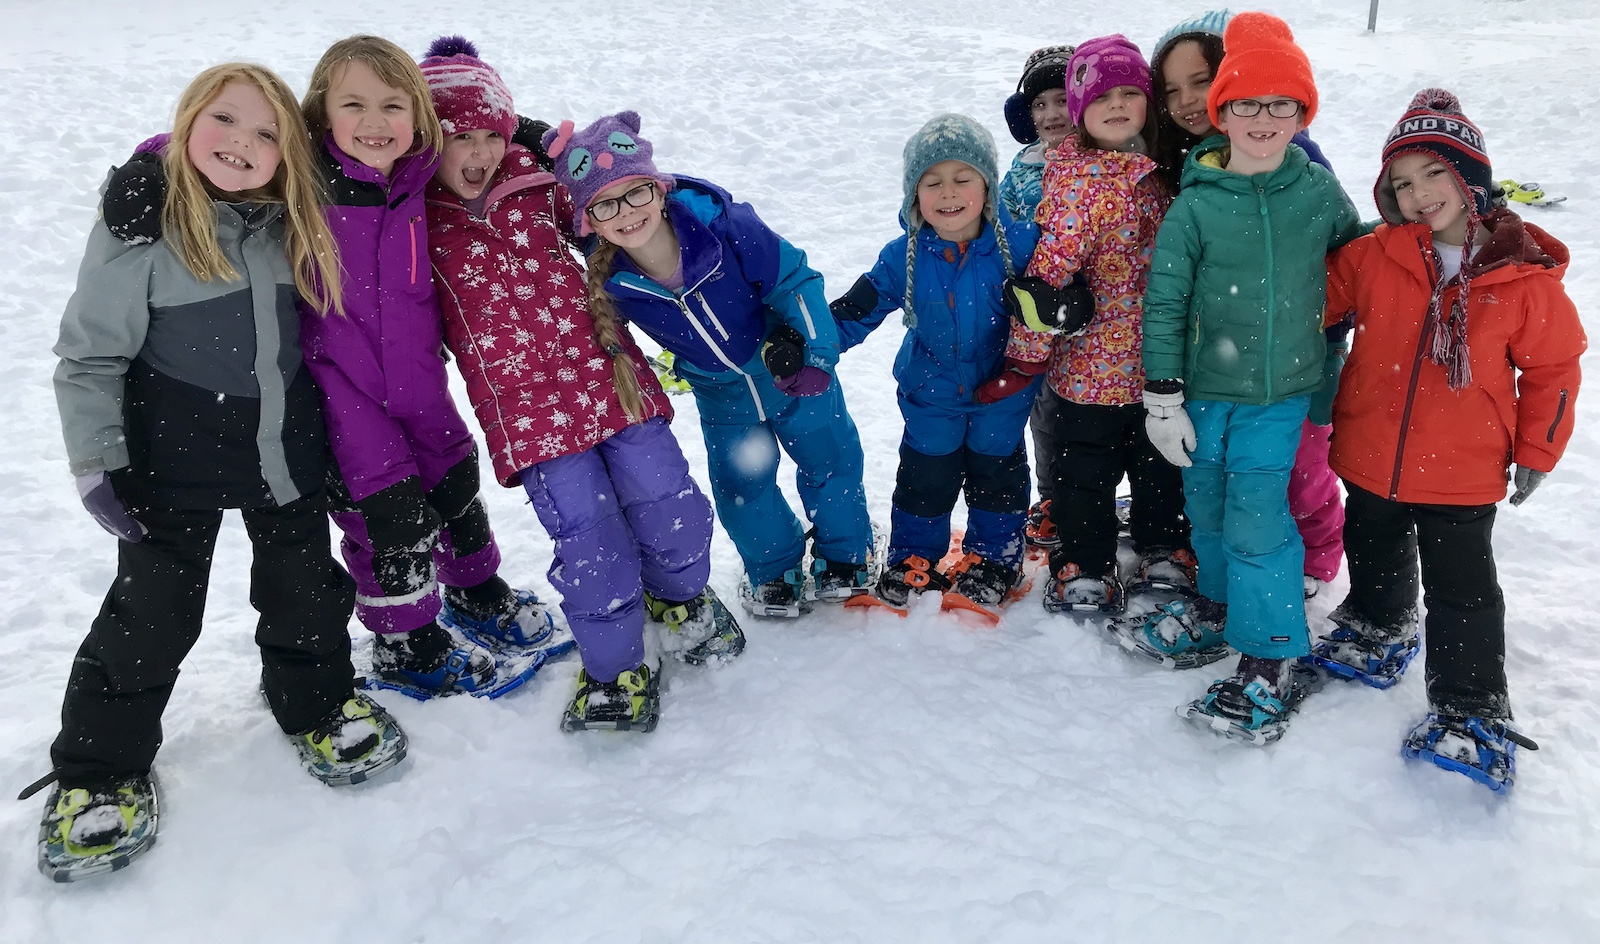 WinterKids 4th annual Winter Games kick off this week